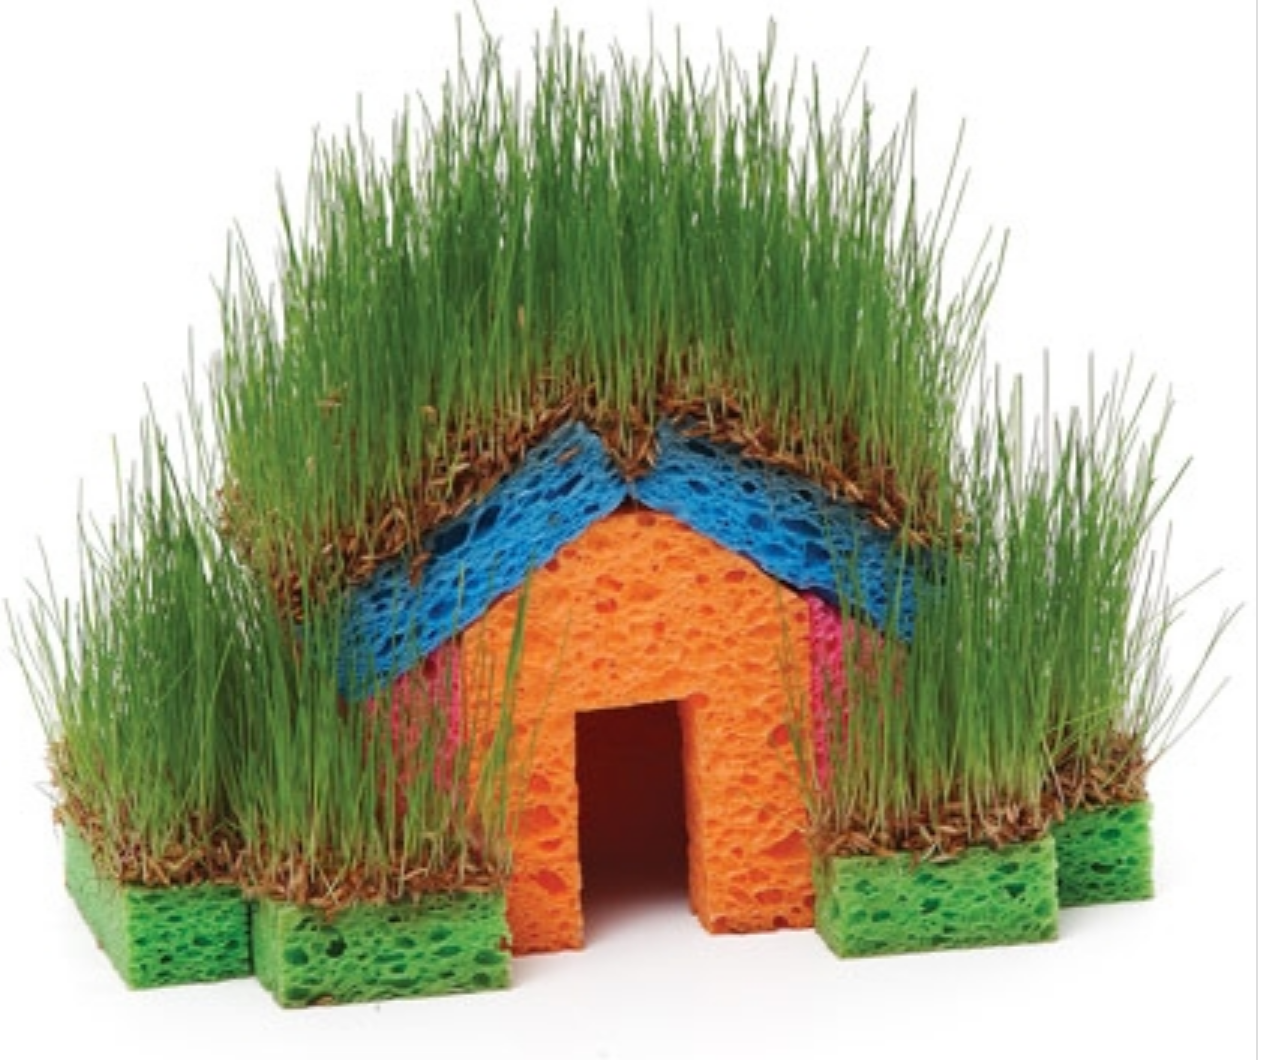 Grass Seed Sponge House How To Make One Easily Crafts